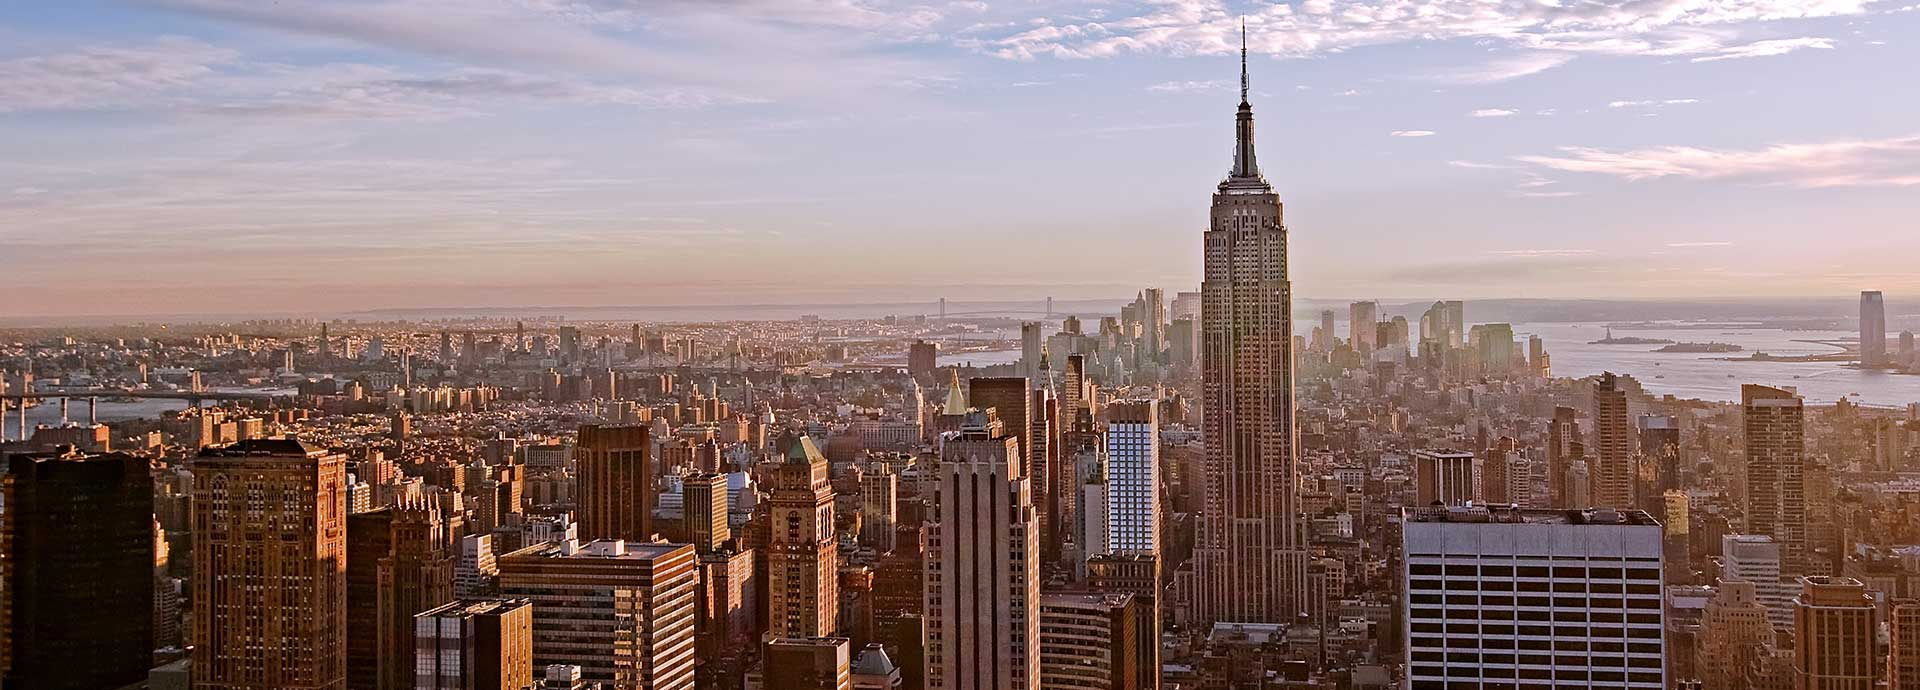 New York's ambitious plans for a renewable energy future